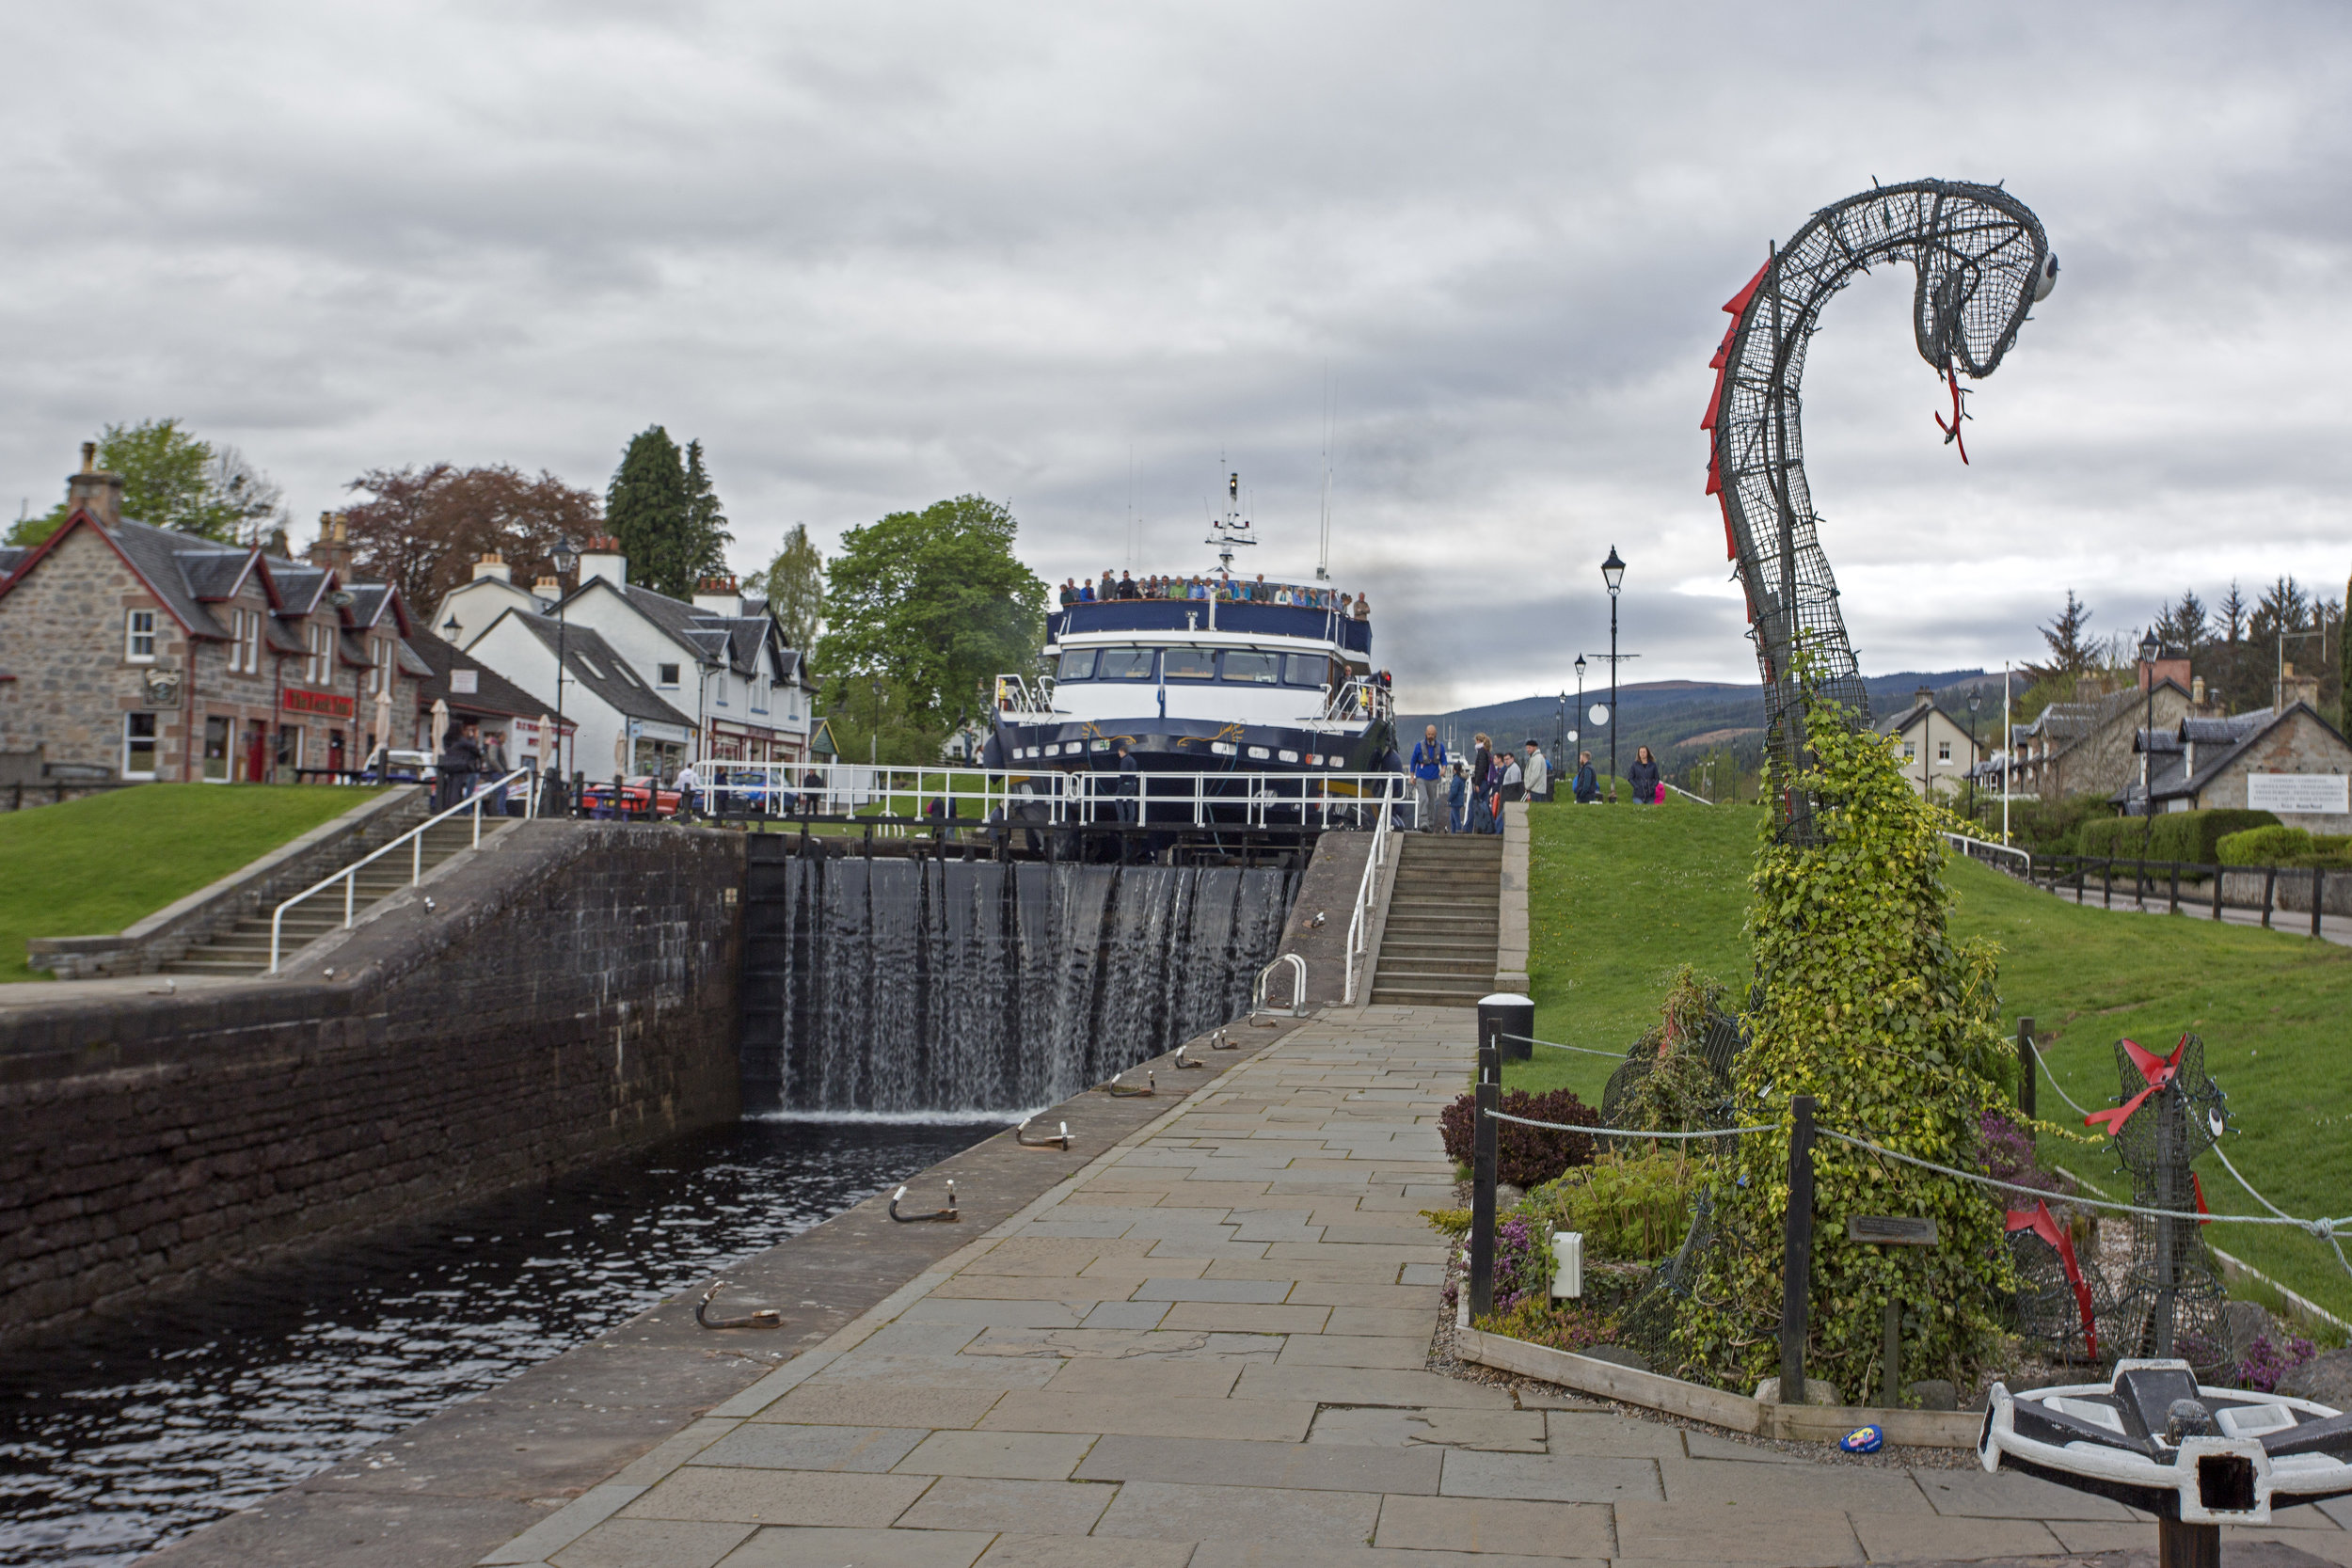 The next morning, we watch at the Lord of the Glens makes its way down the steps.  It's the largest boat that can fit (just barely) through the locks on the Caledonian Canal.